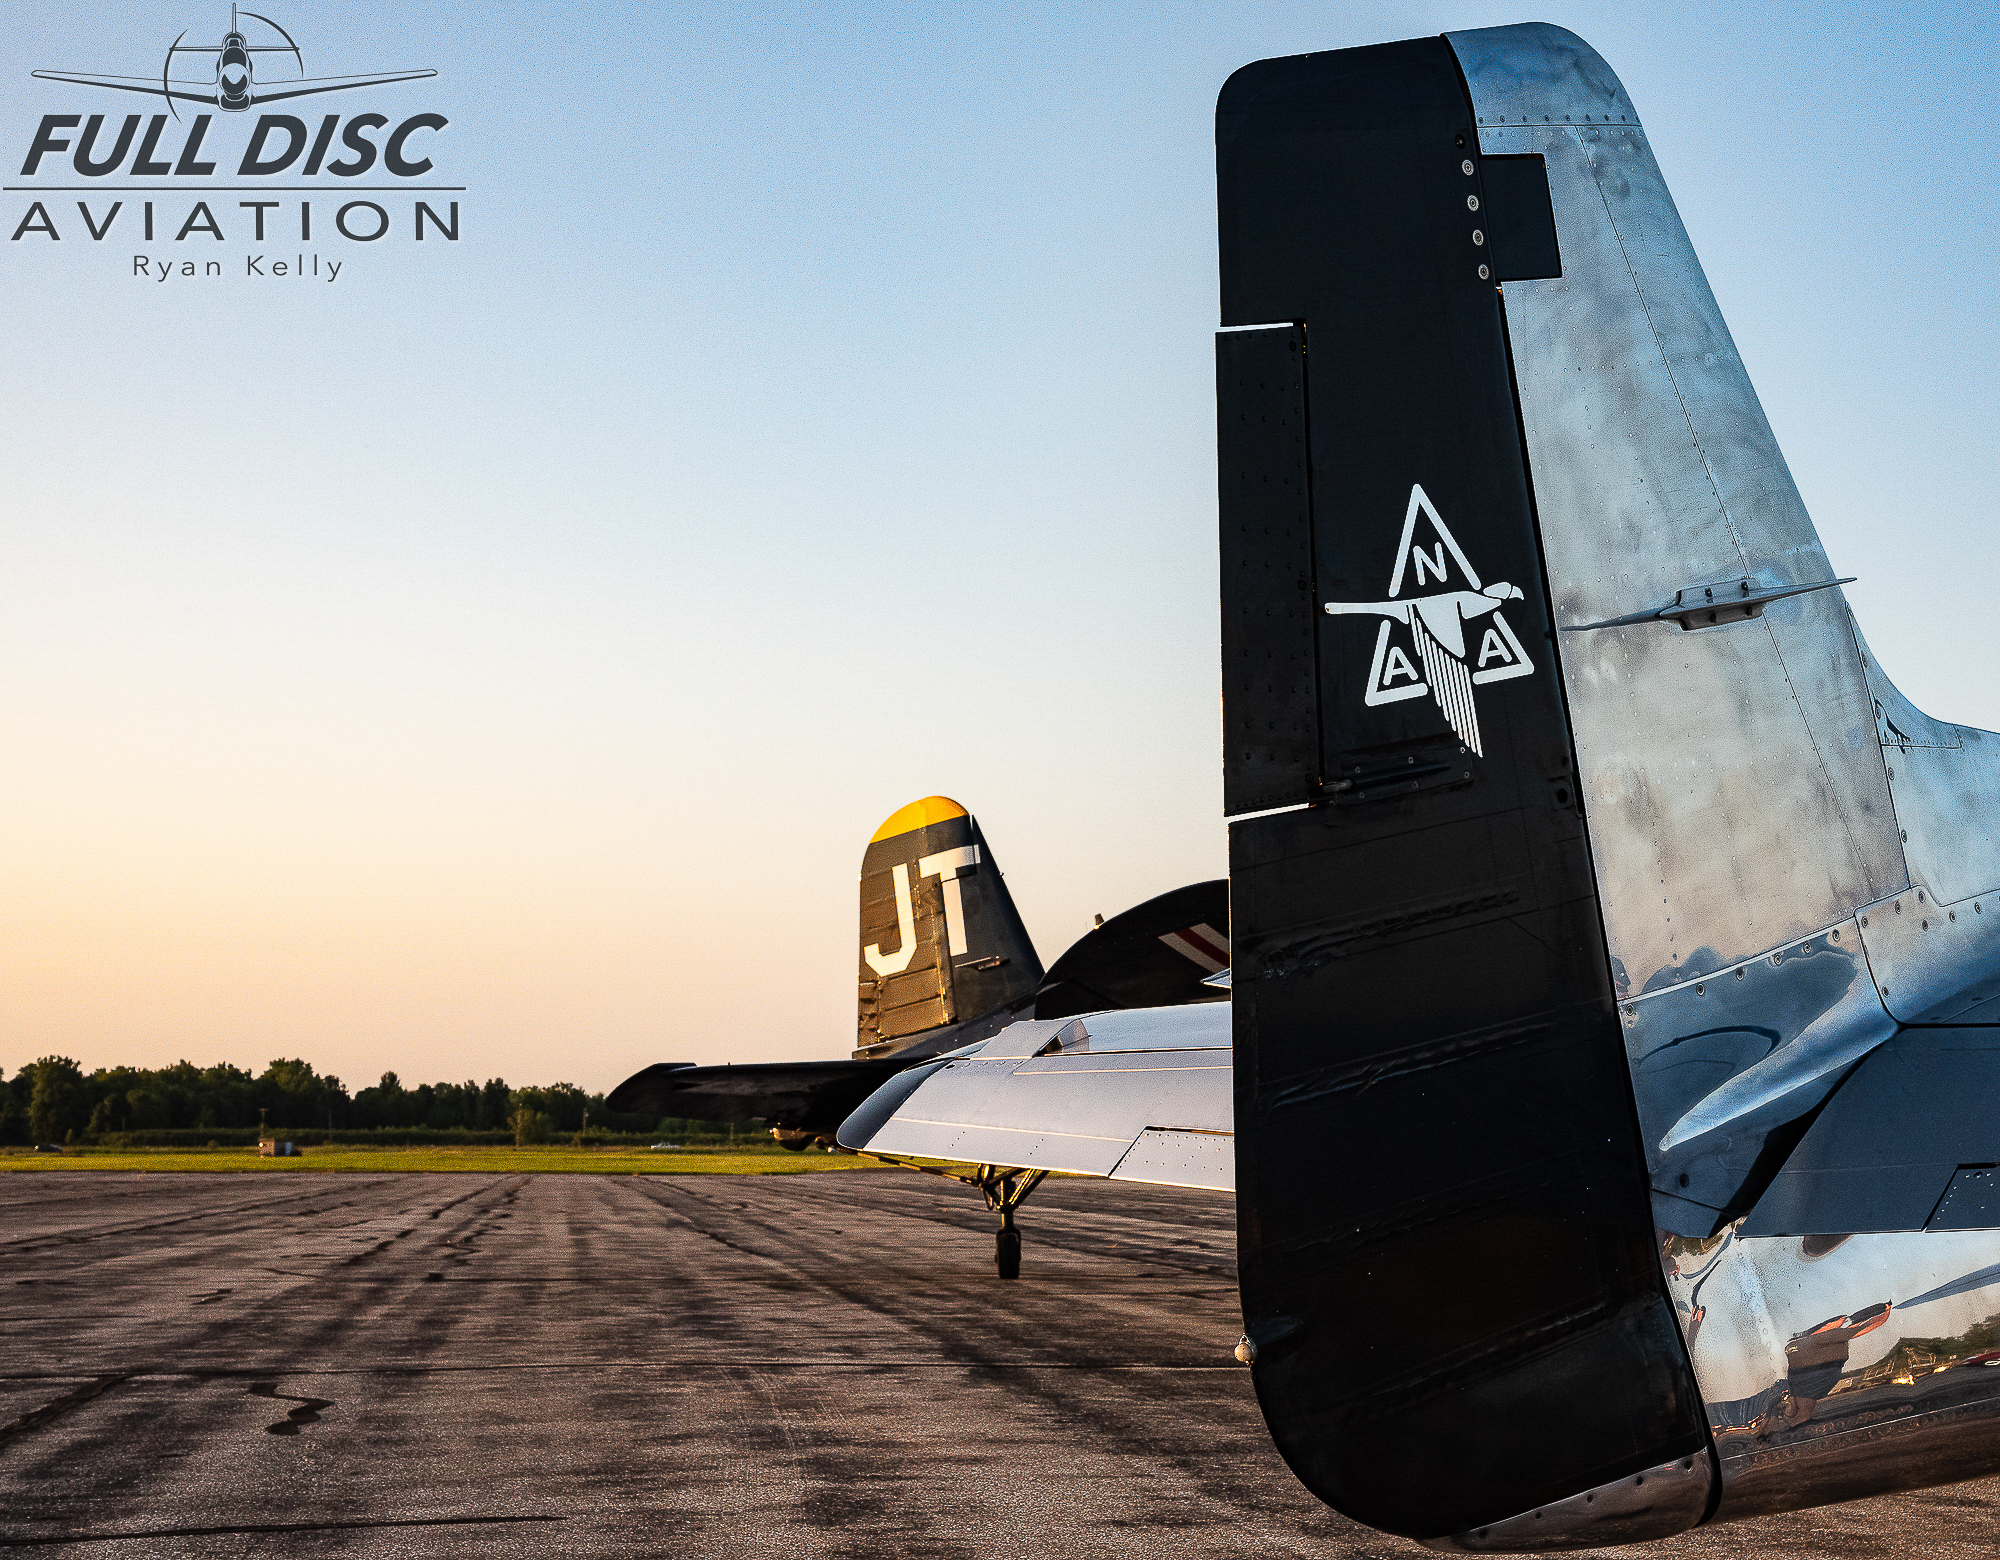 ClassOf45_FullDiscAviation_RyanKelly_August 01, 2019_02.jpg